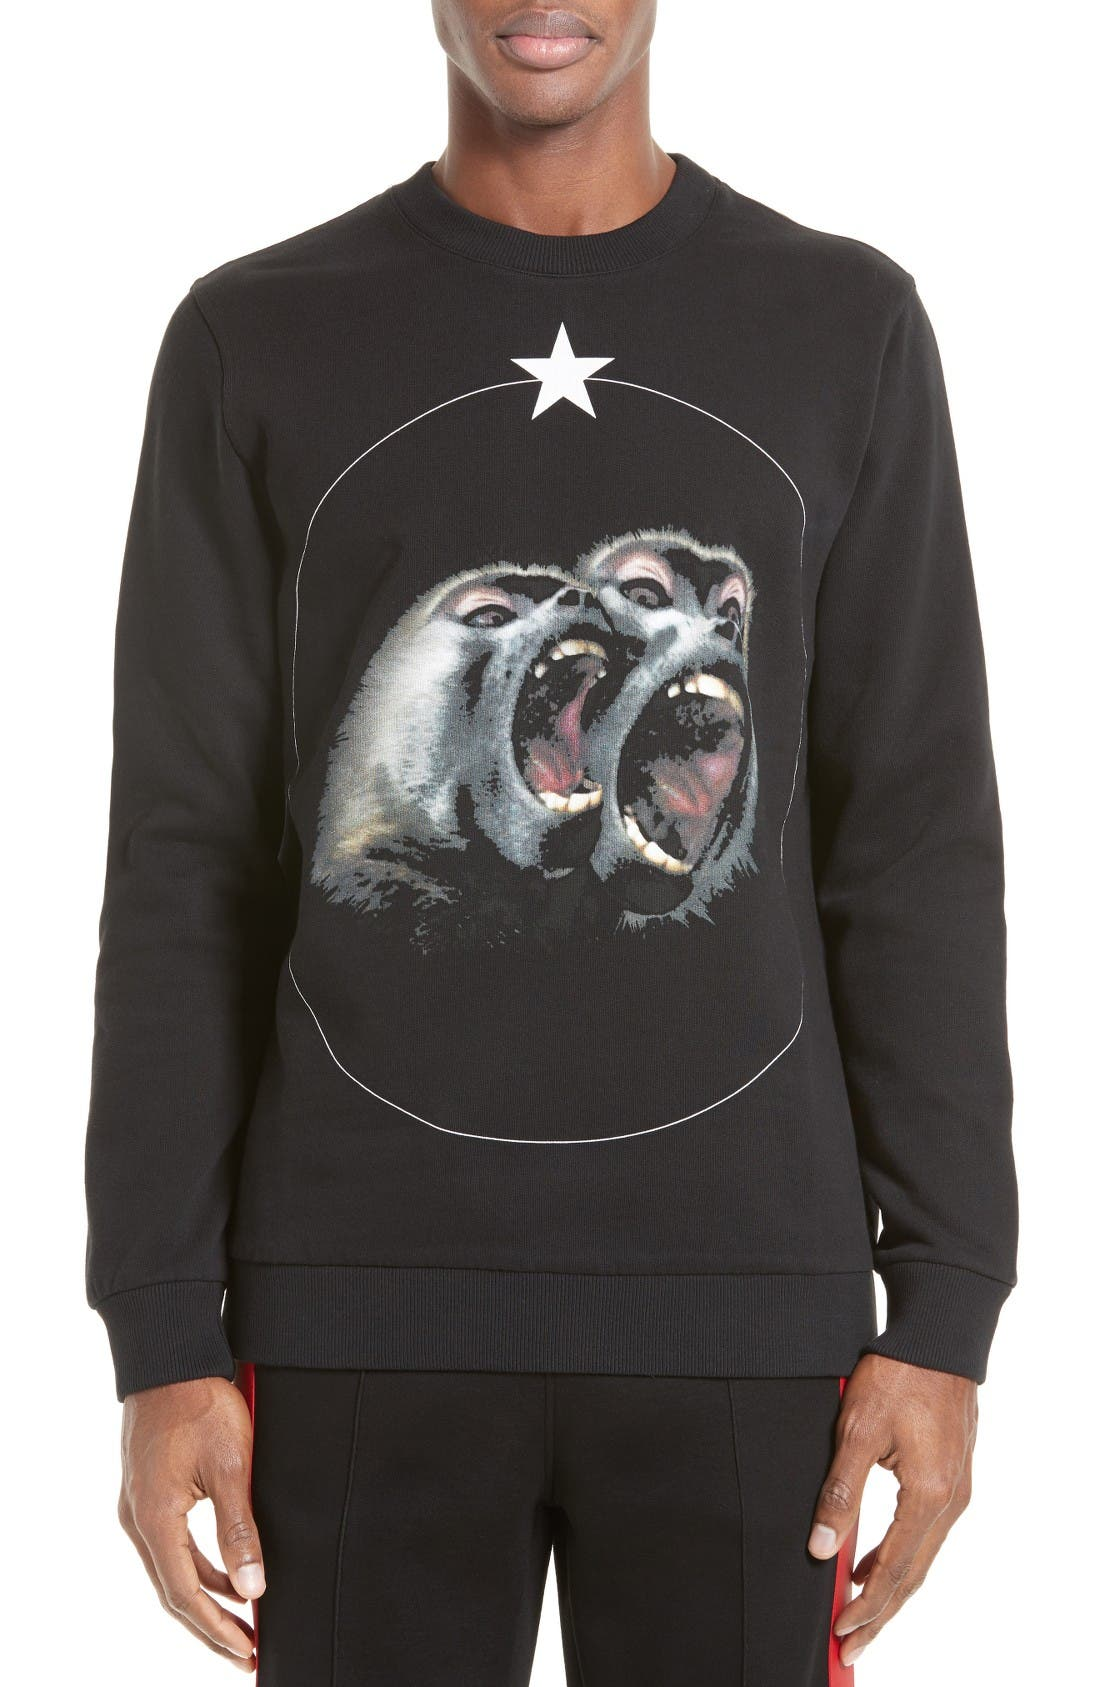 Monkey Brothers Graphic Sweatshirt,                         Main,                         color, Black